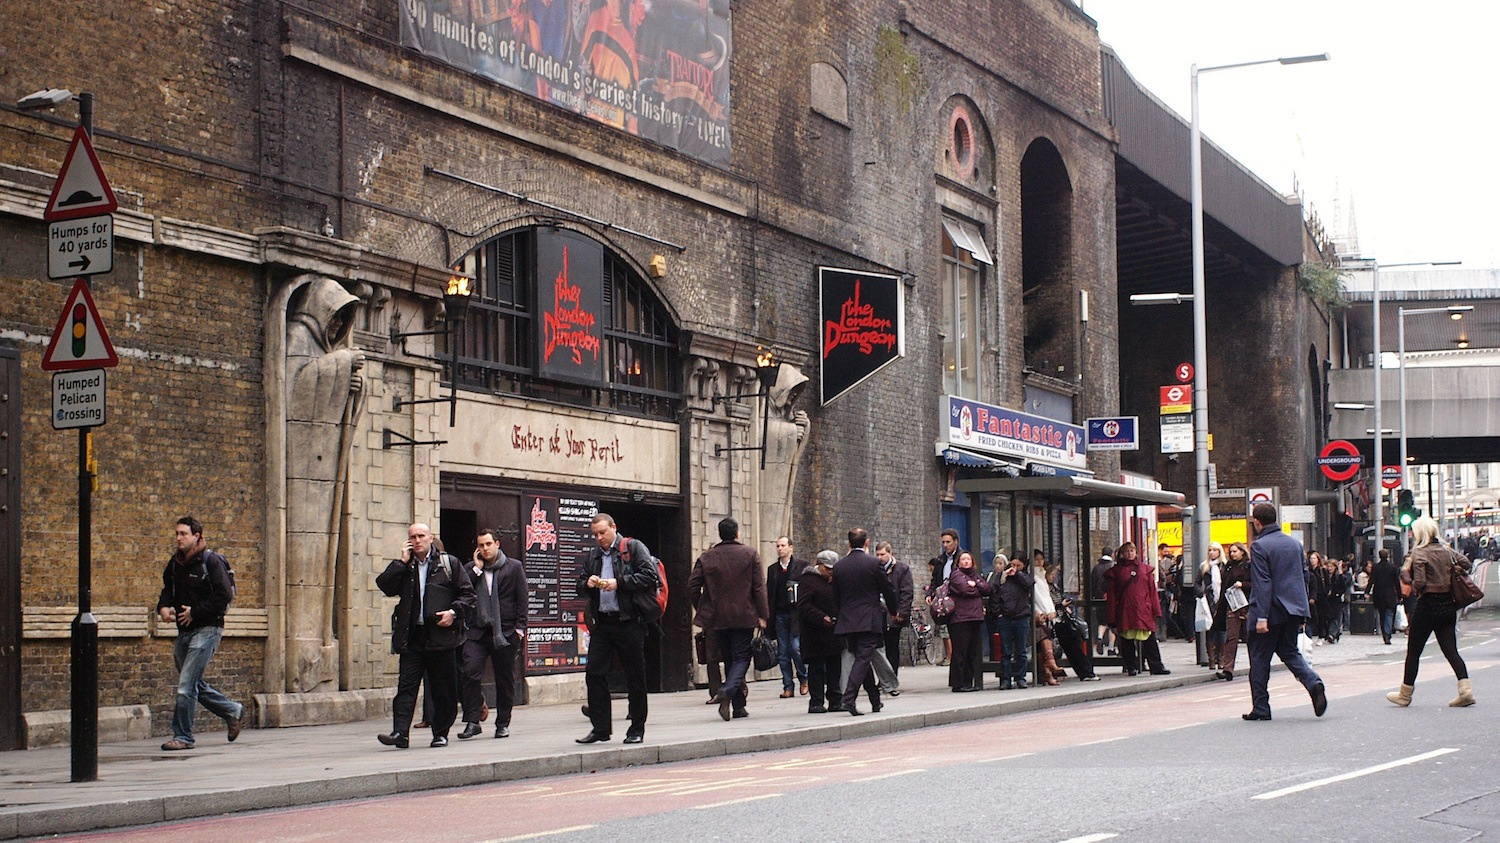 London dungeon by gogodiscover